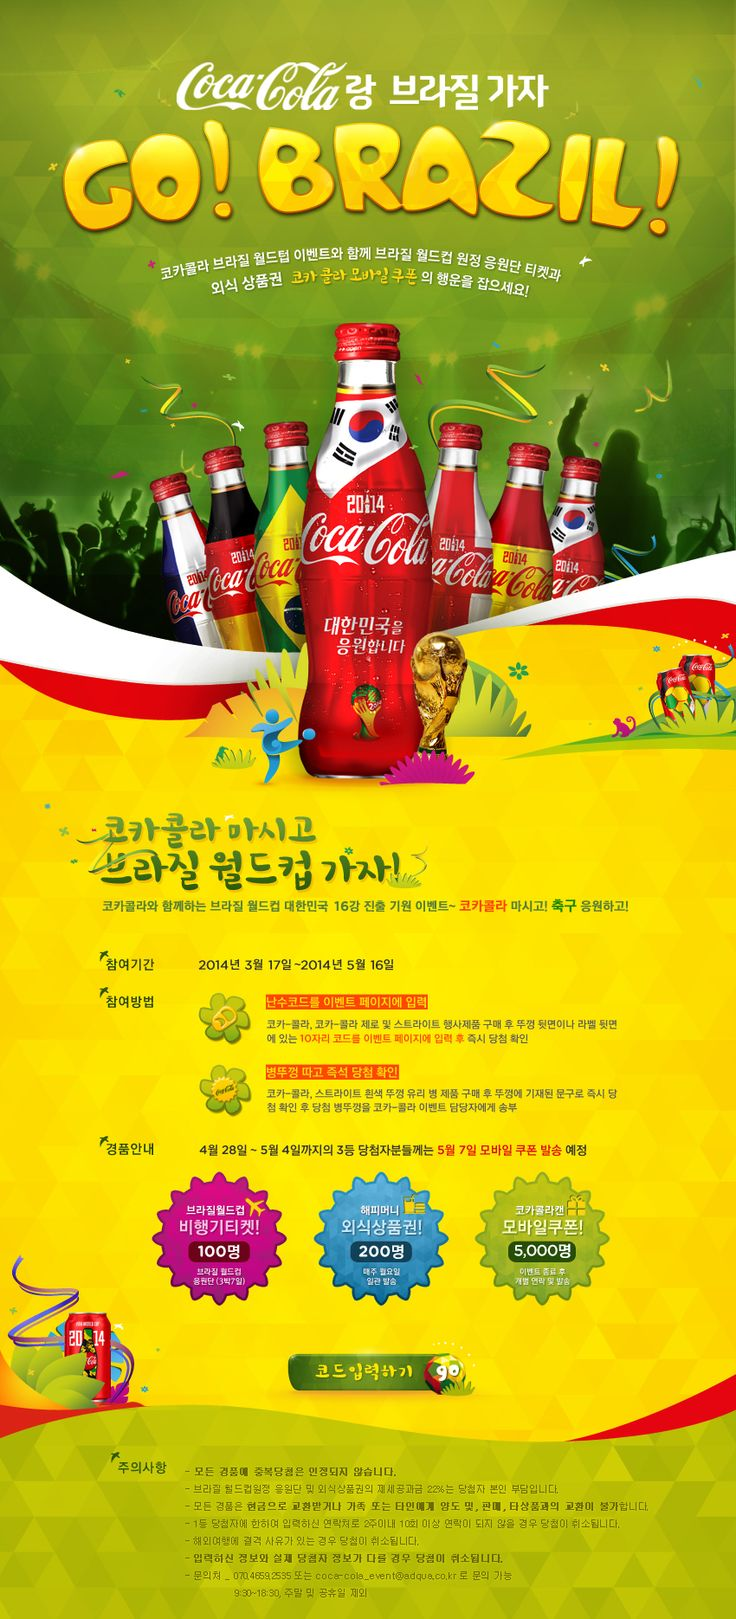 #2014 #FIFA #WorldCup #Brazil & #cocacola #eventpage #design #Haenggu #promotion